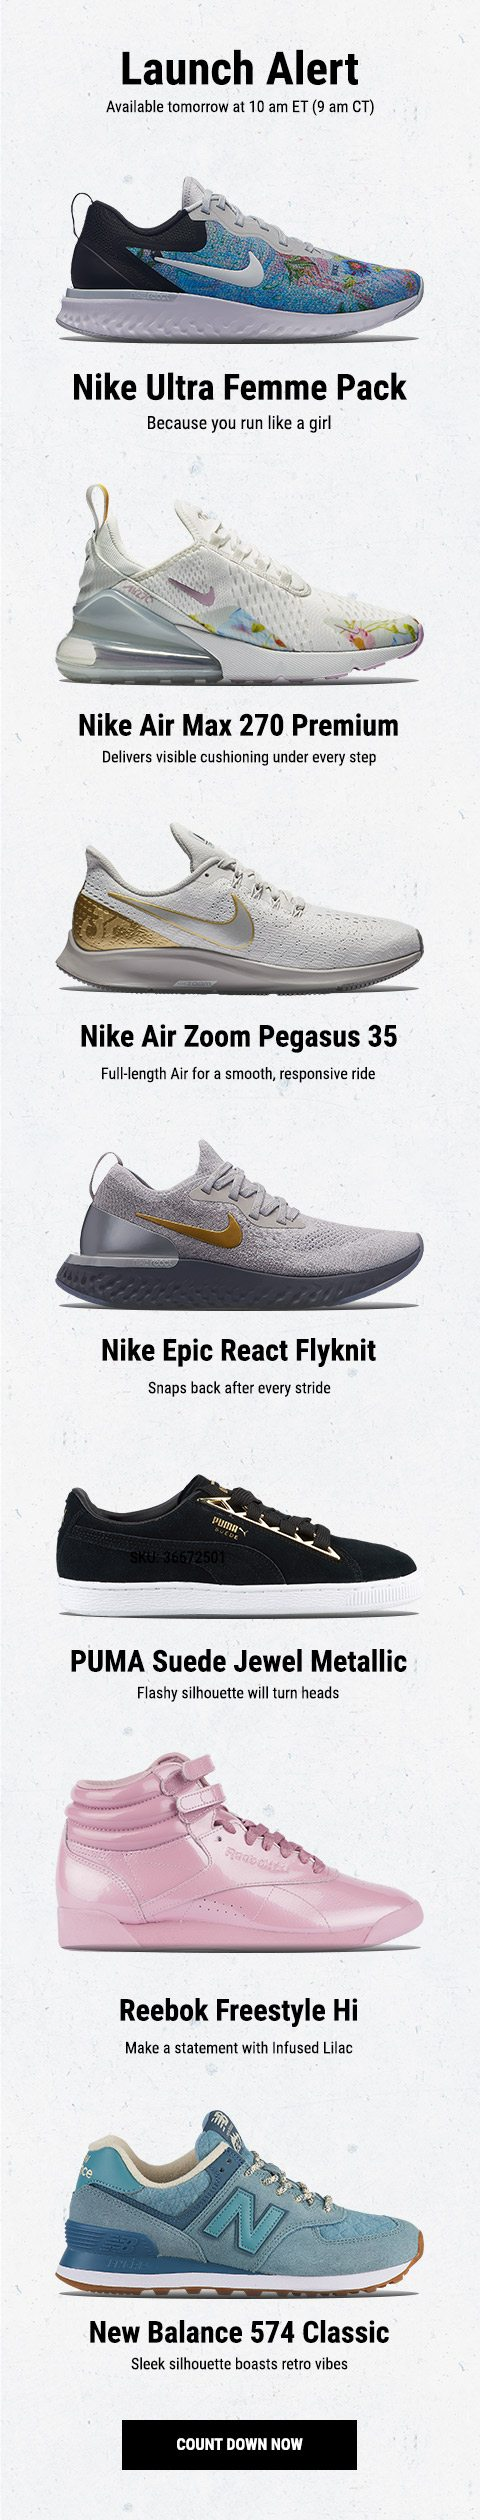 New releases from Nike, PUMA, Reebok, and New Balance – available ...